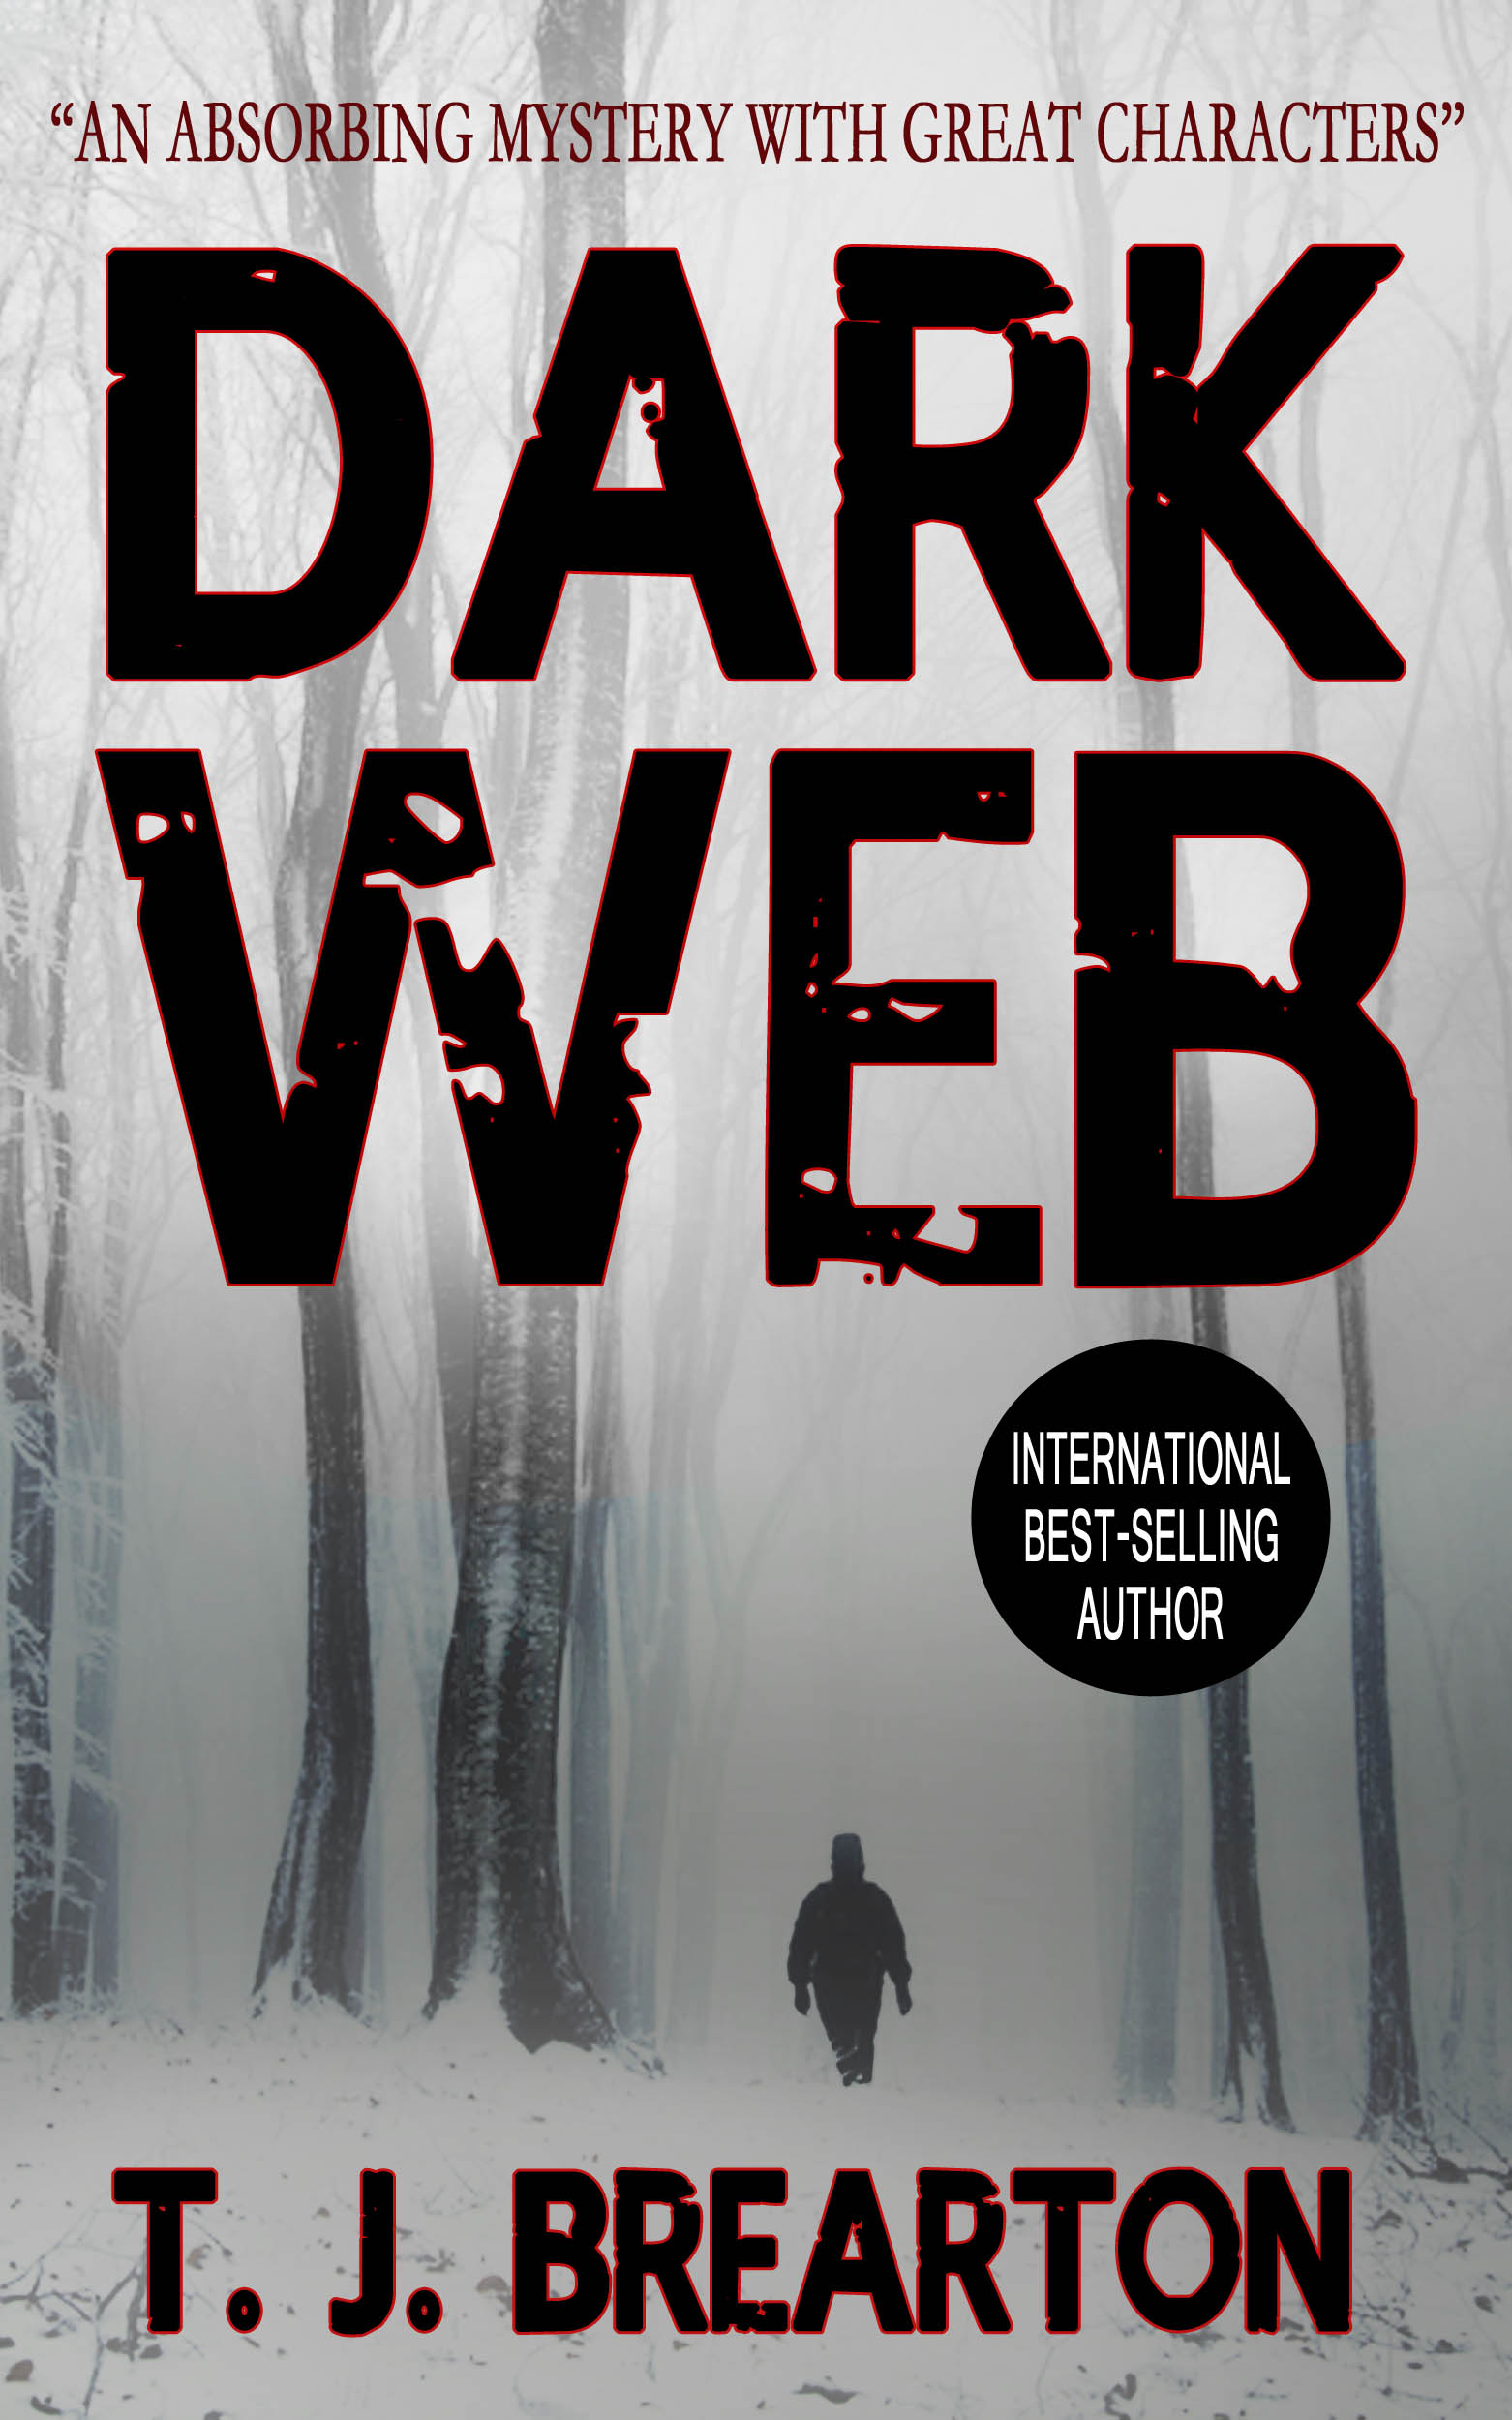 DARK WEB COVER.jpg